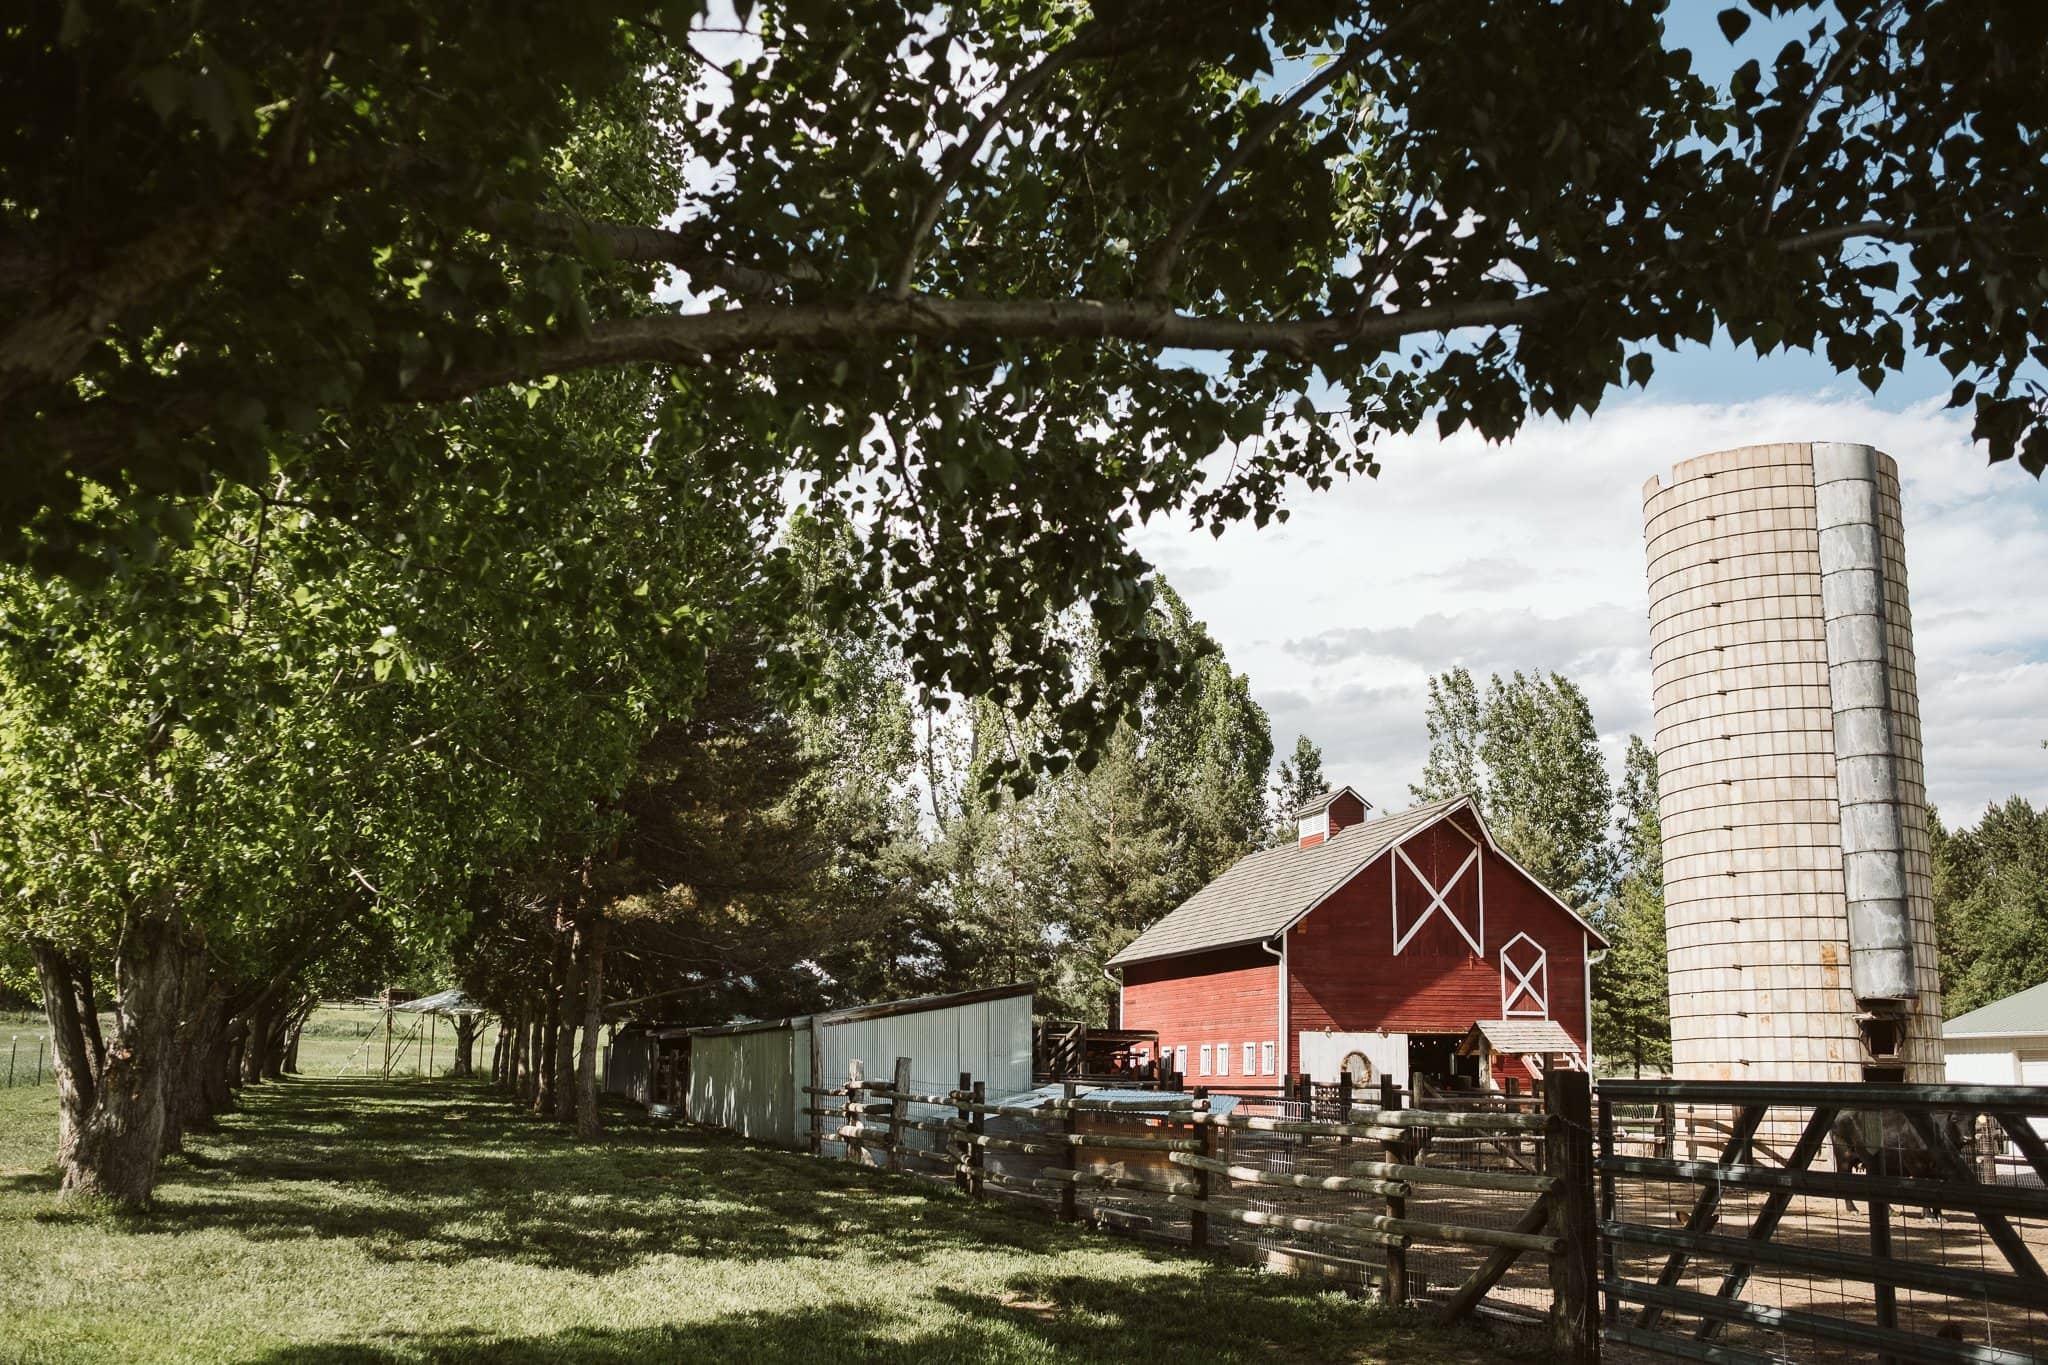 milston-well-farm-wedding-venue-boulder-17